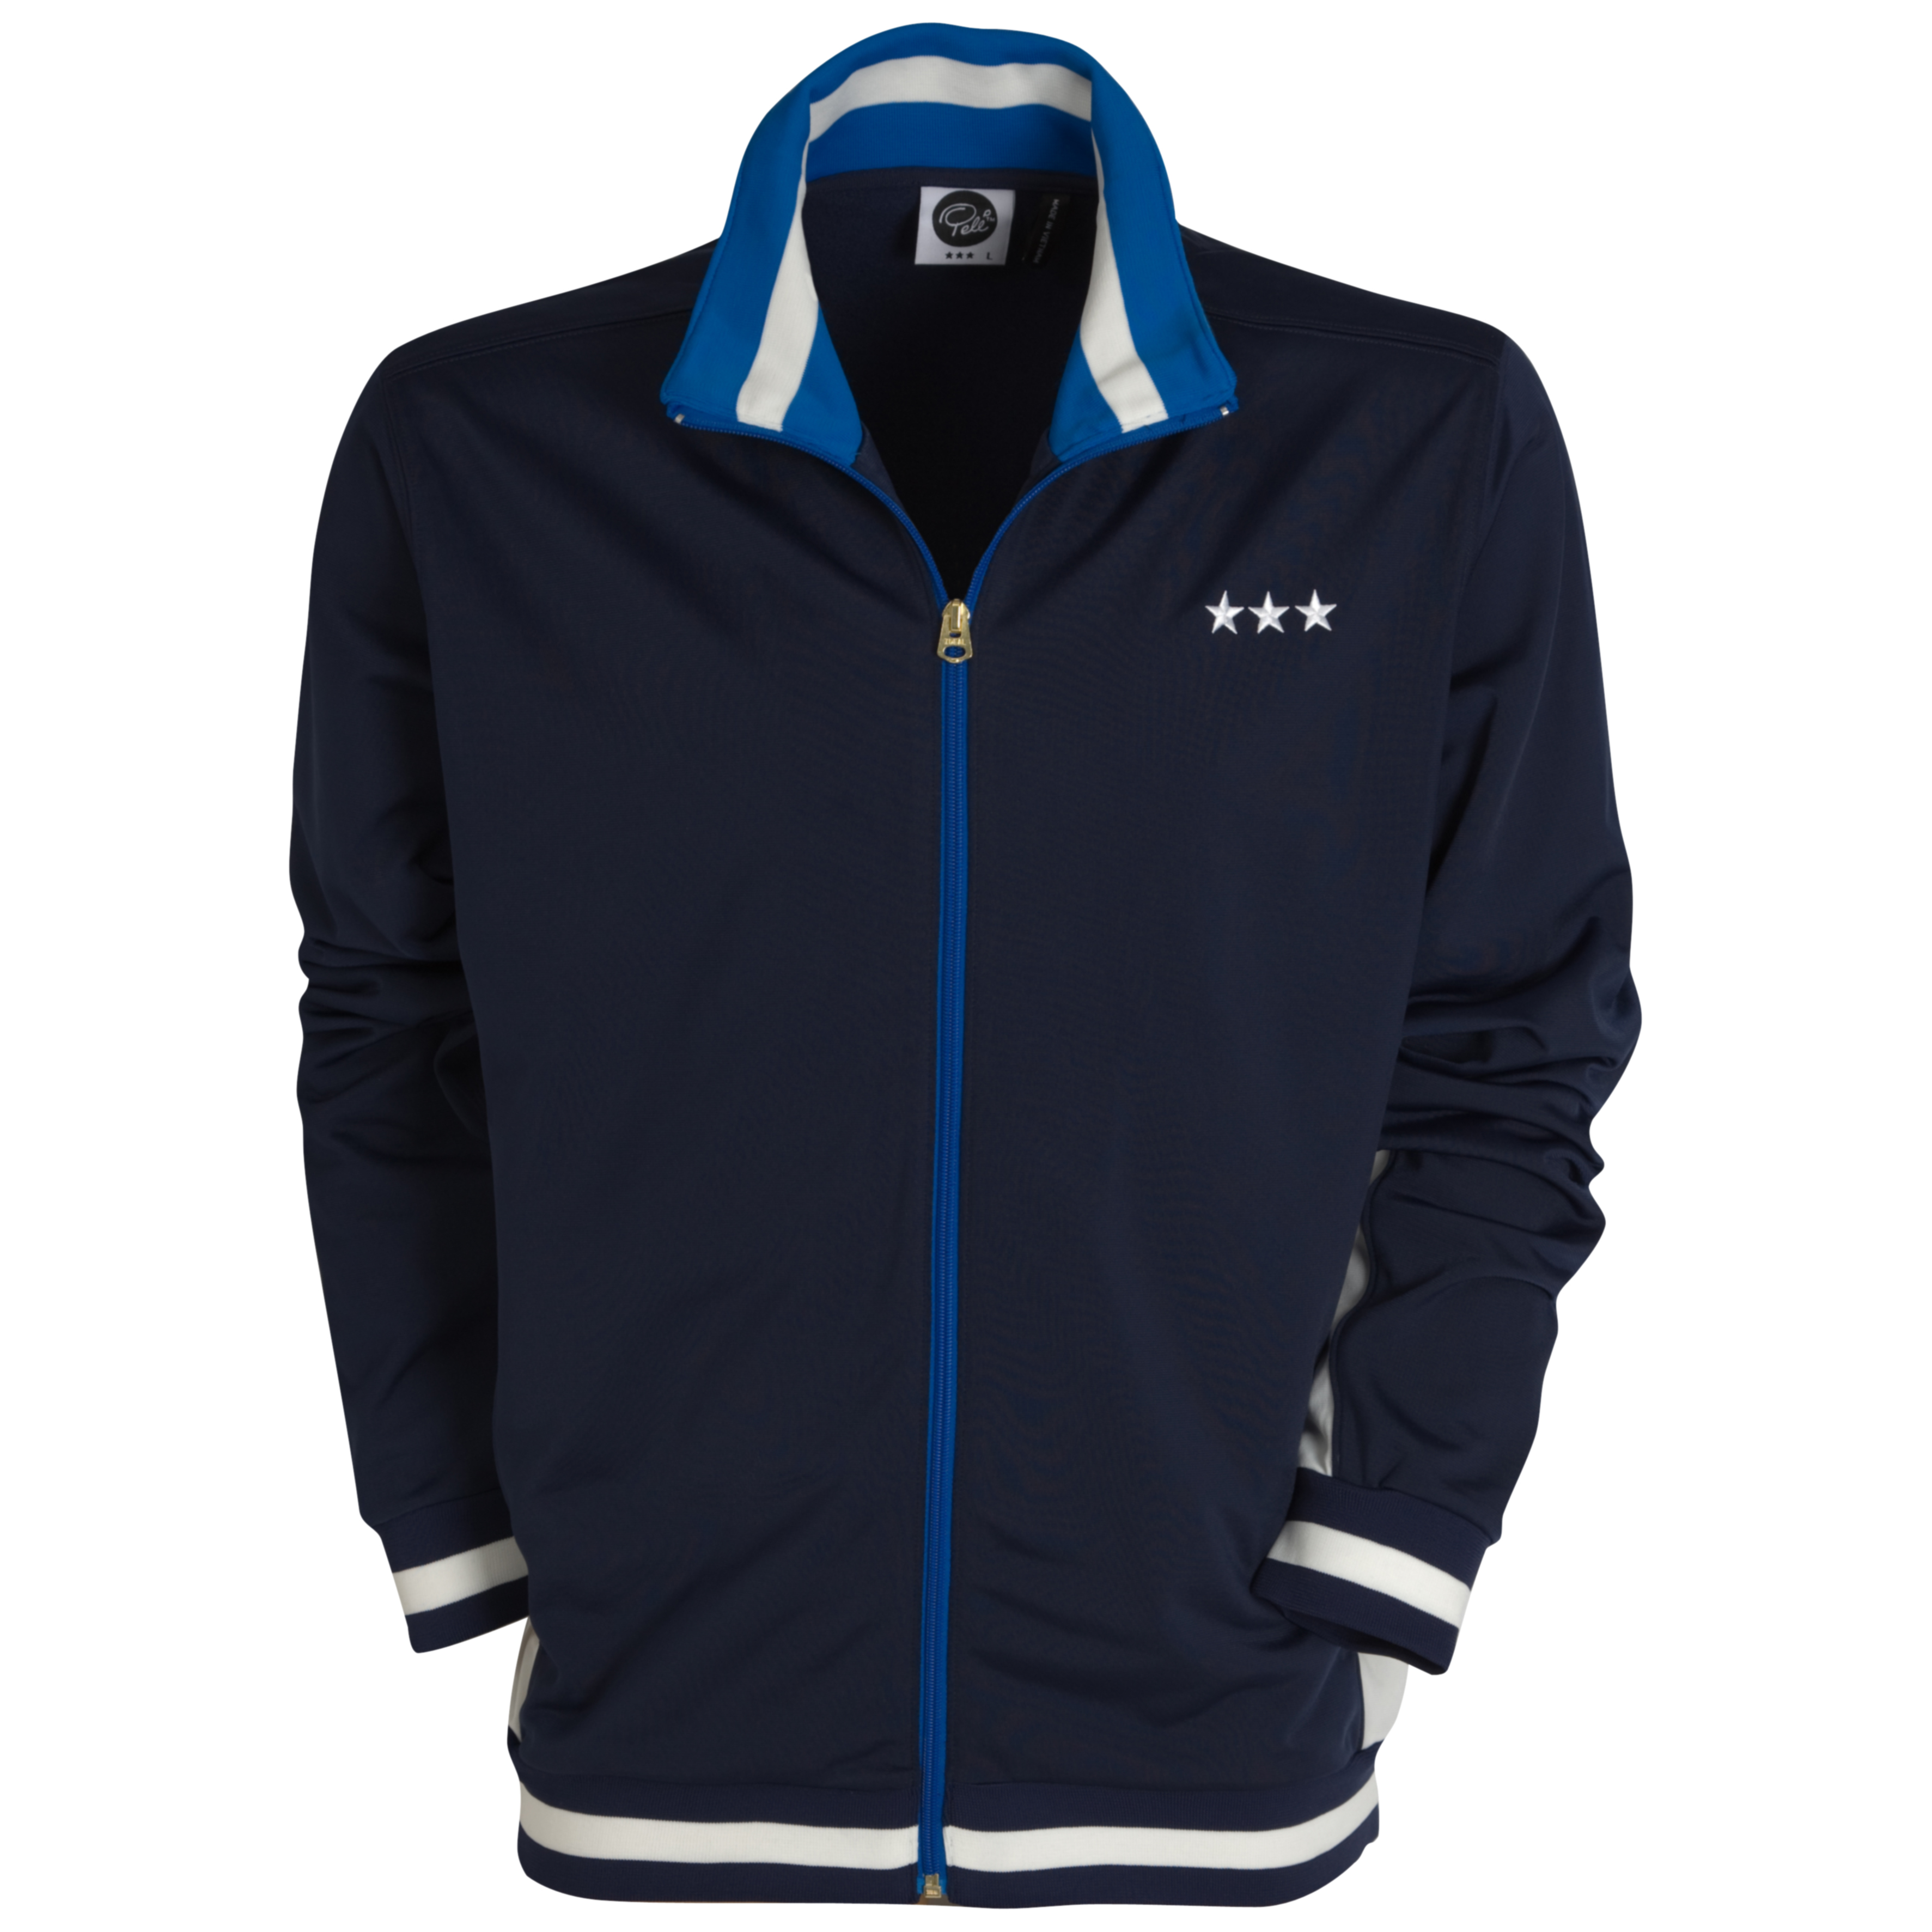 Pele Pele Sports Track Jacket - Peacoat/Snow White